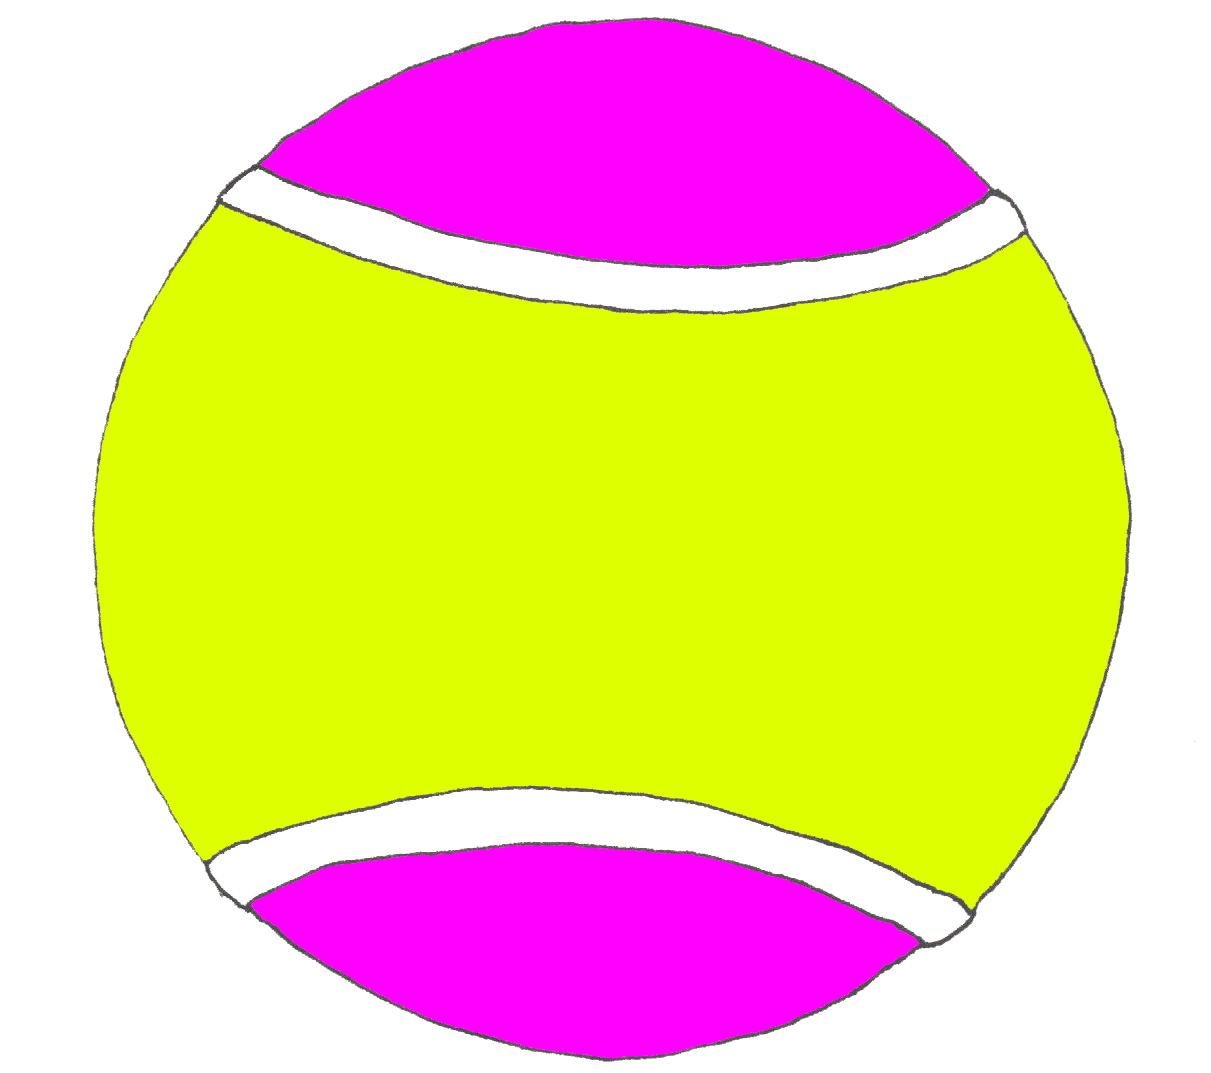 1211x1073 Tennis Ball Clipart Free Images 3